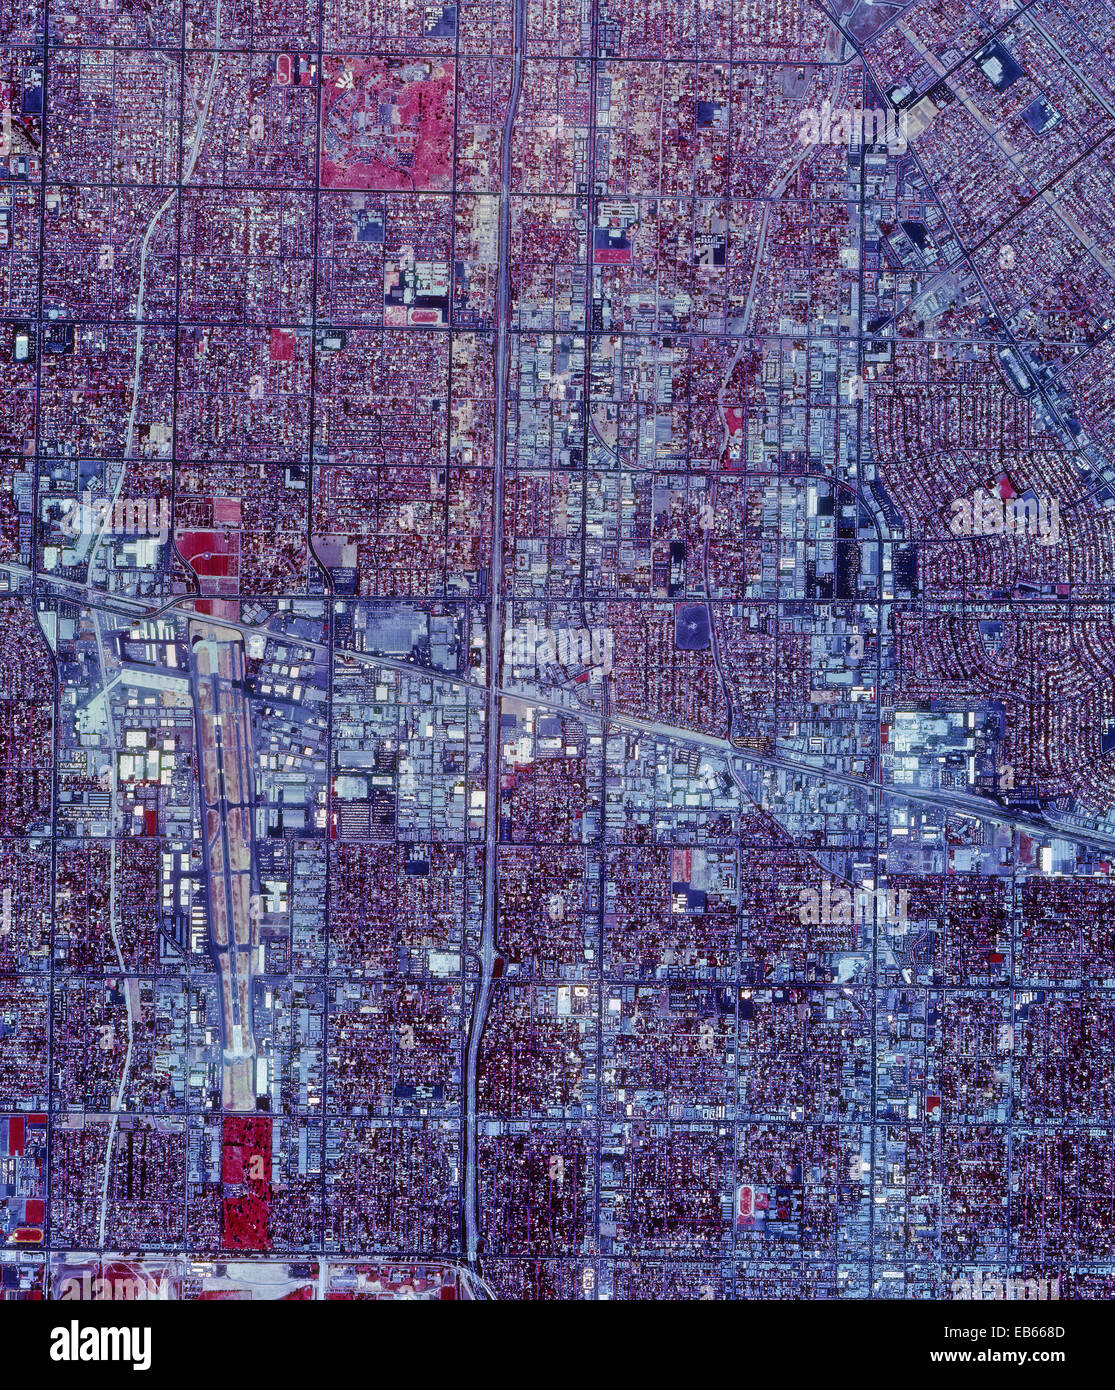 historical infrared aerial photograph of Van Nuys, California, 1989 - Stock Image